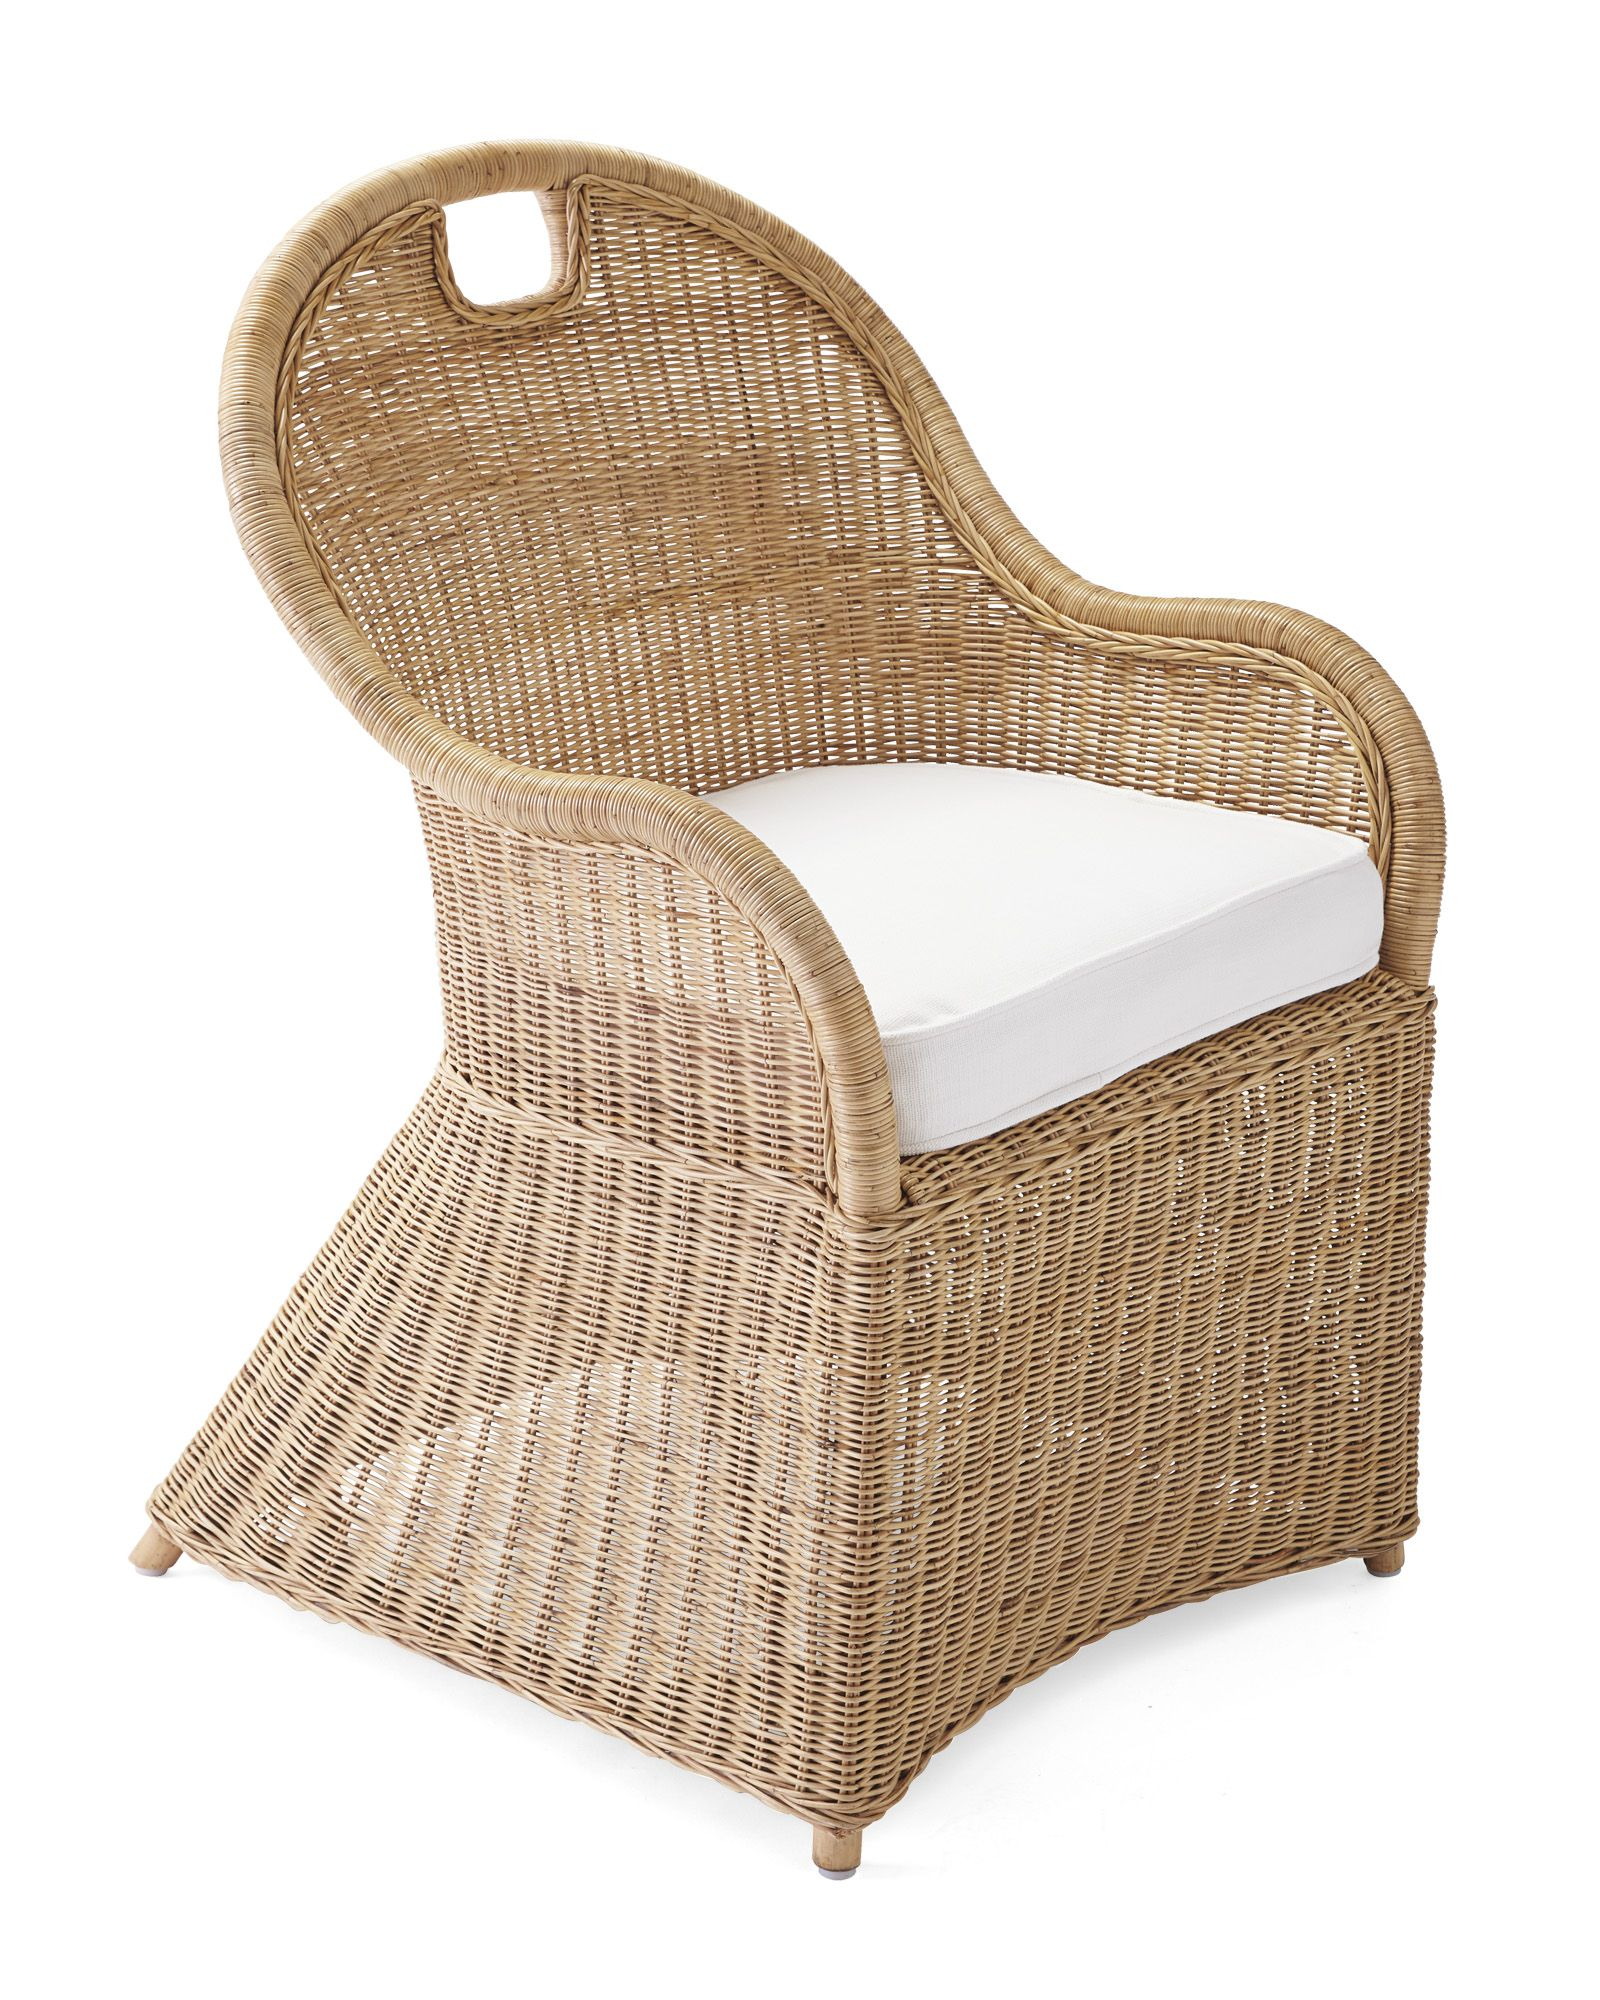 Dining Room Chair Cushions, Wicker Dining Room Chair Cushions